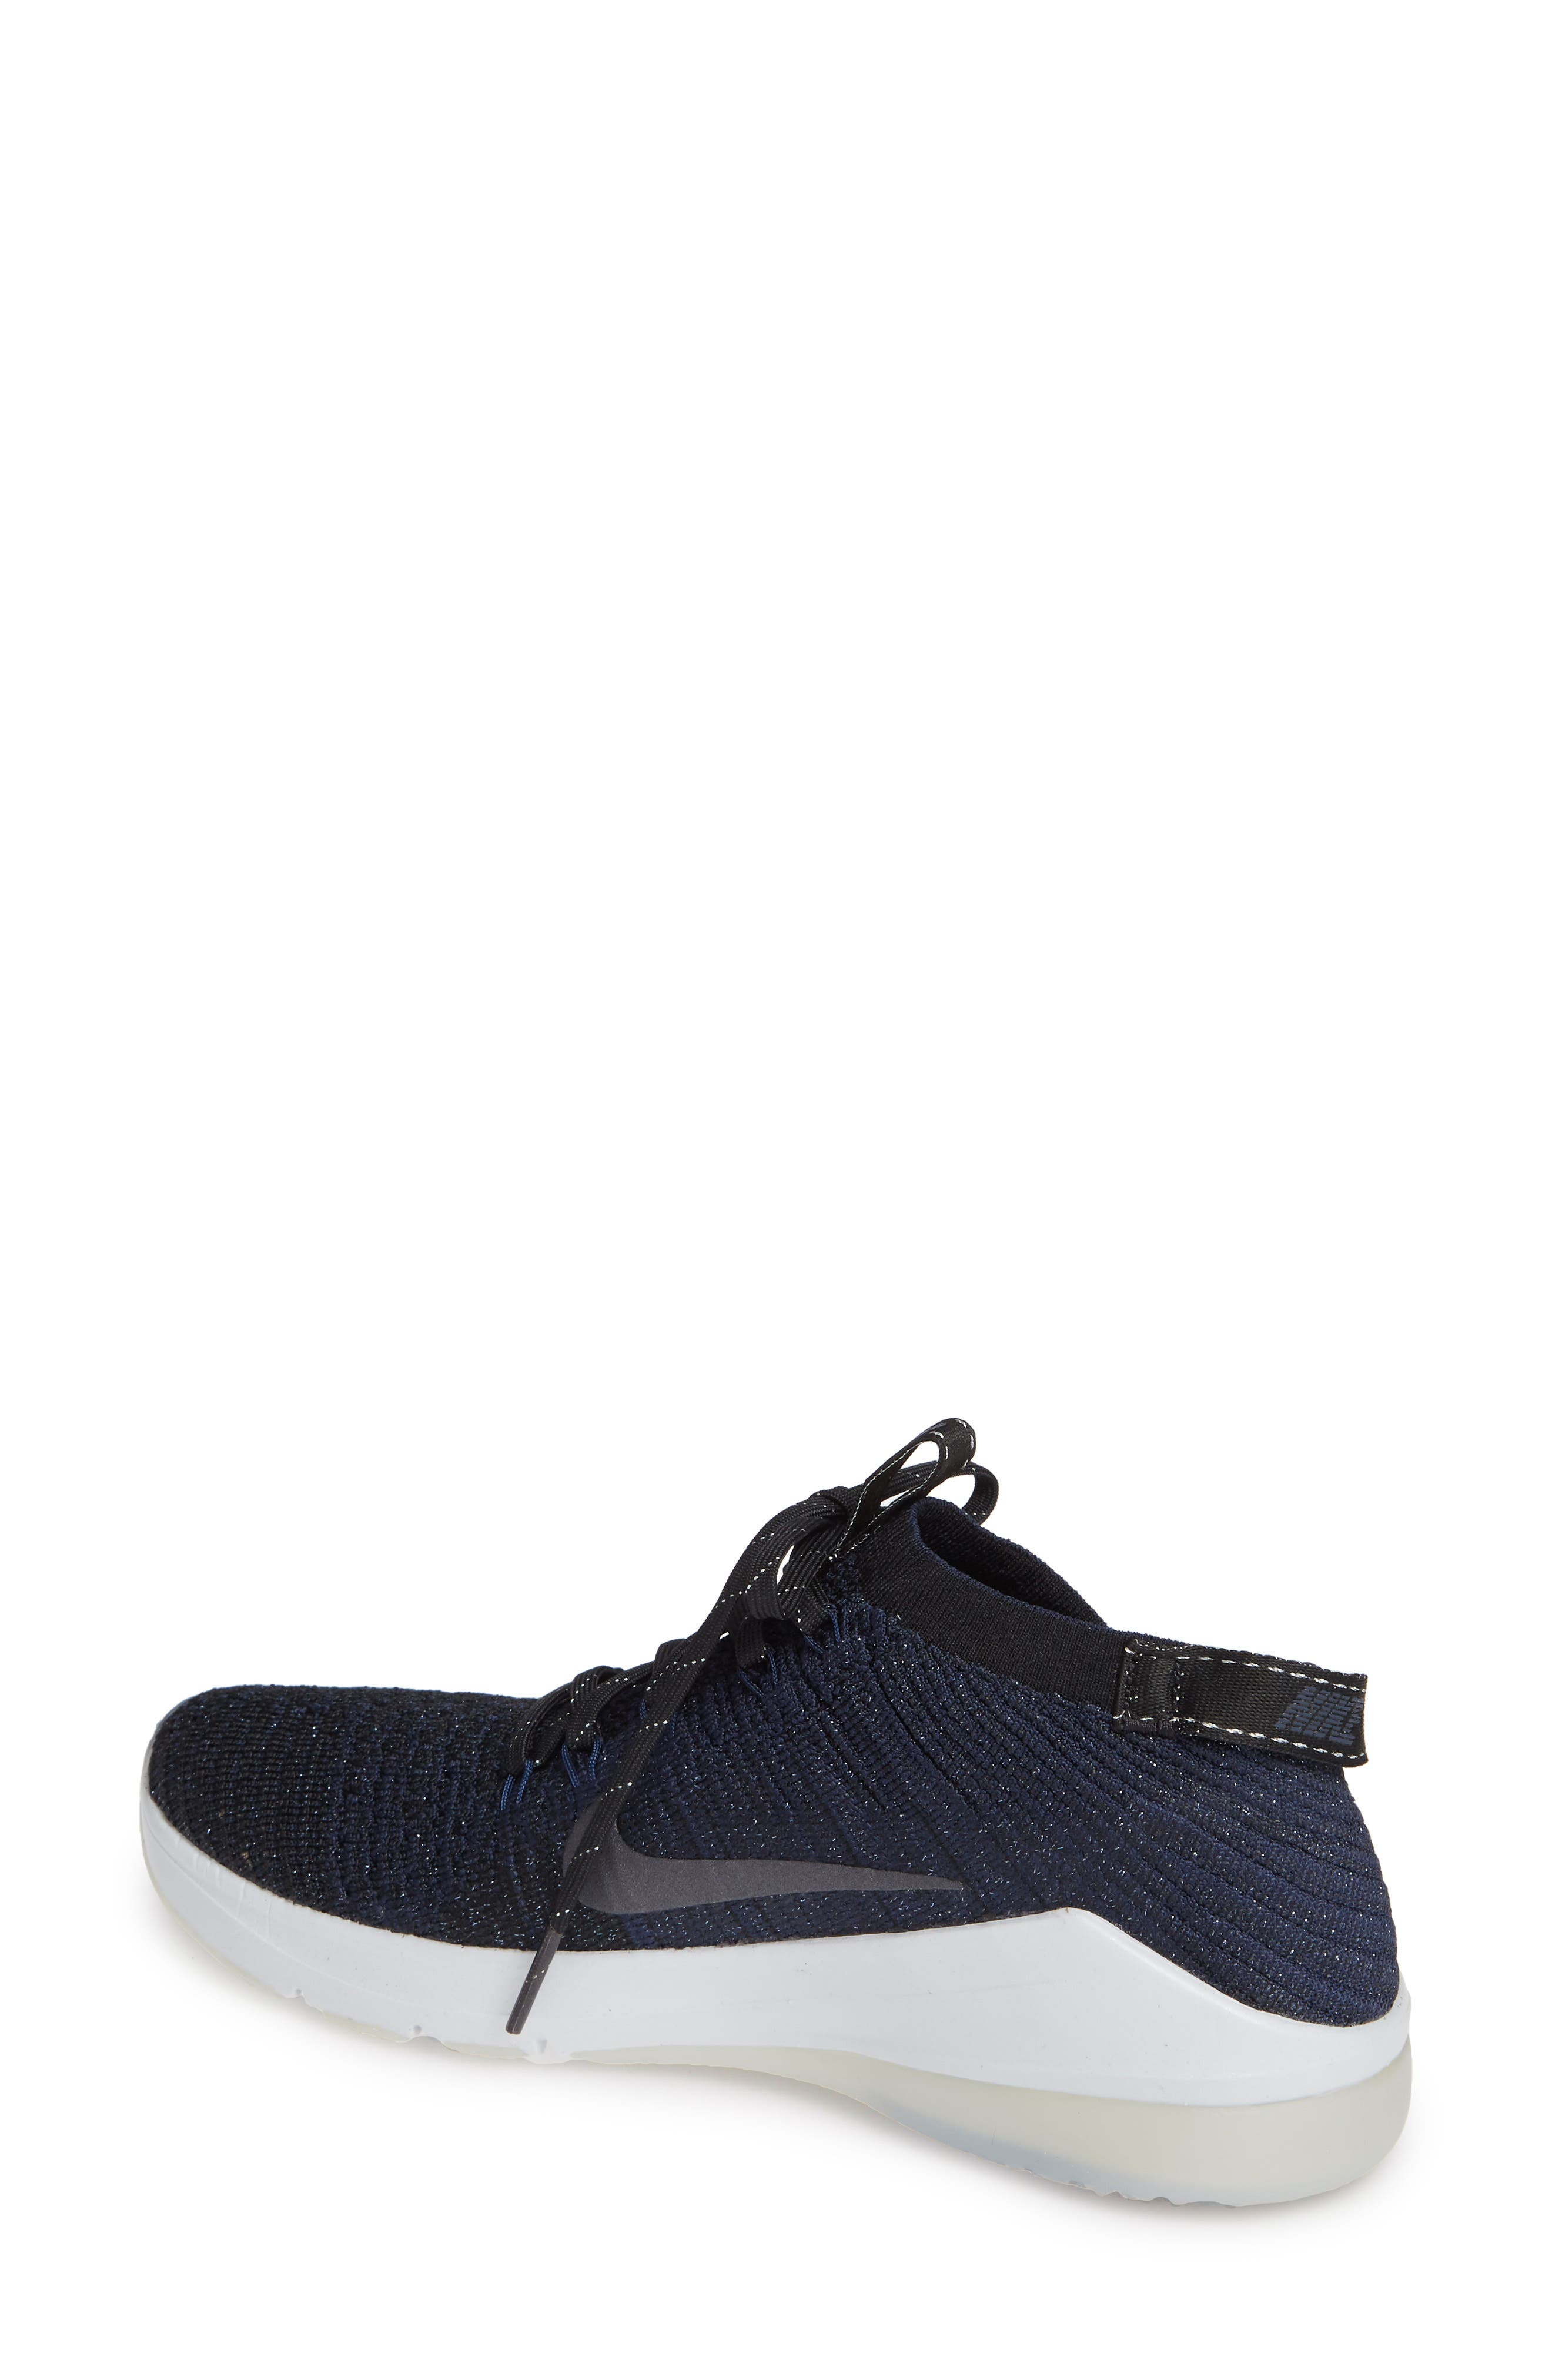 Air Zoom Fearless Flyknit 2 Training Sneaker,                             Alternate thumbnail 2, color,                             BLACK/ METALLIC NAVY- NAVY